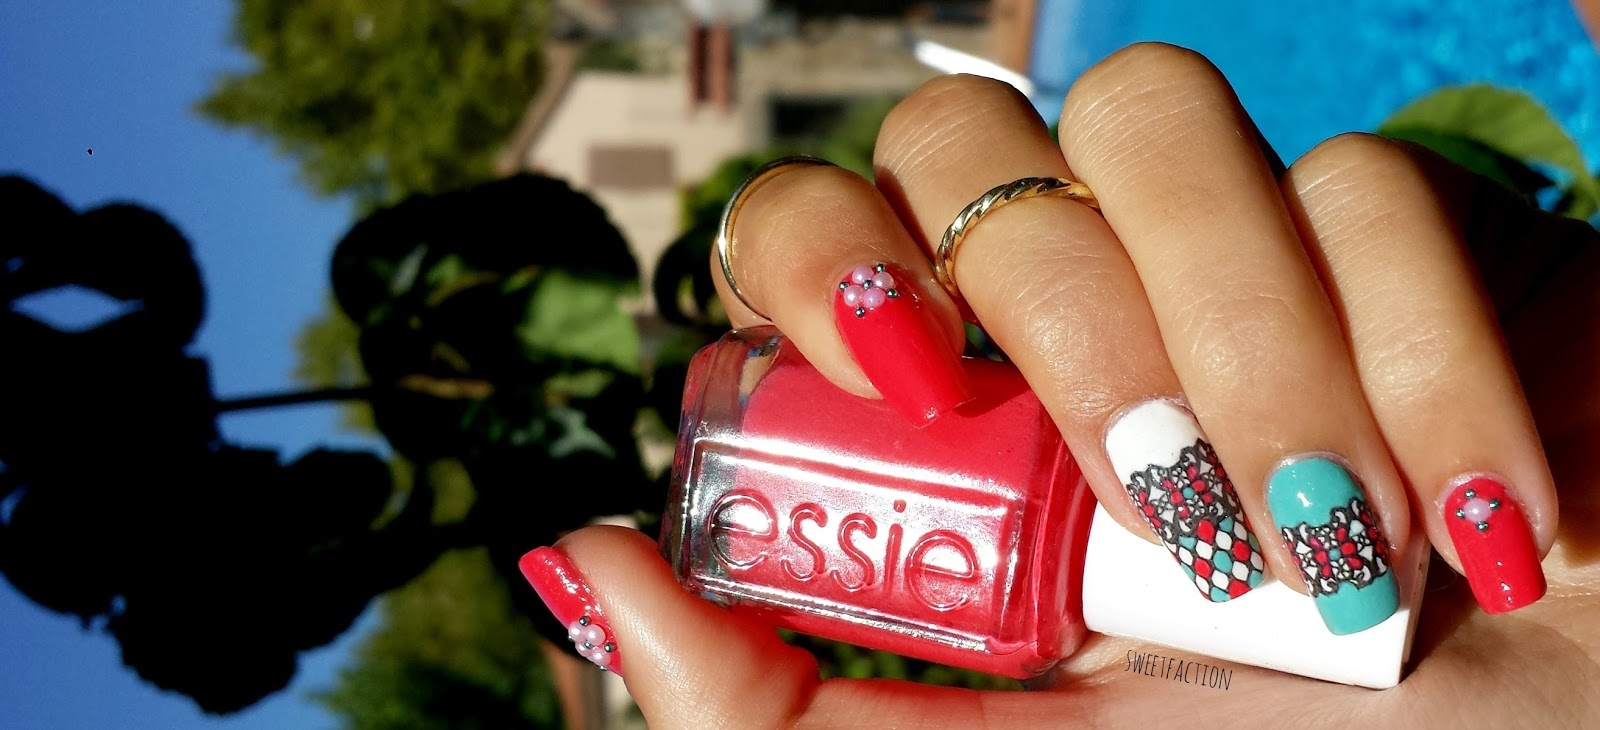 Sweetfaction: CHIC NAILS con ESSIE